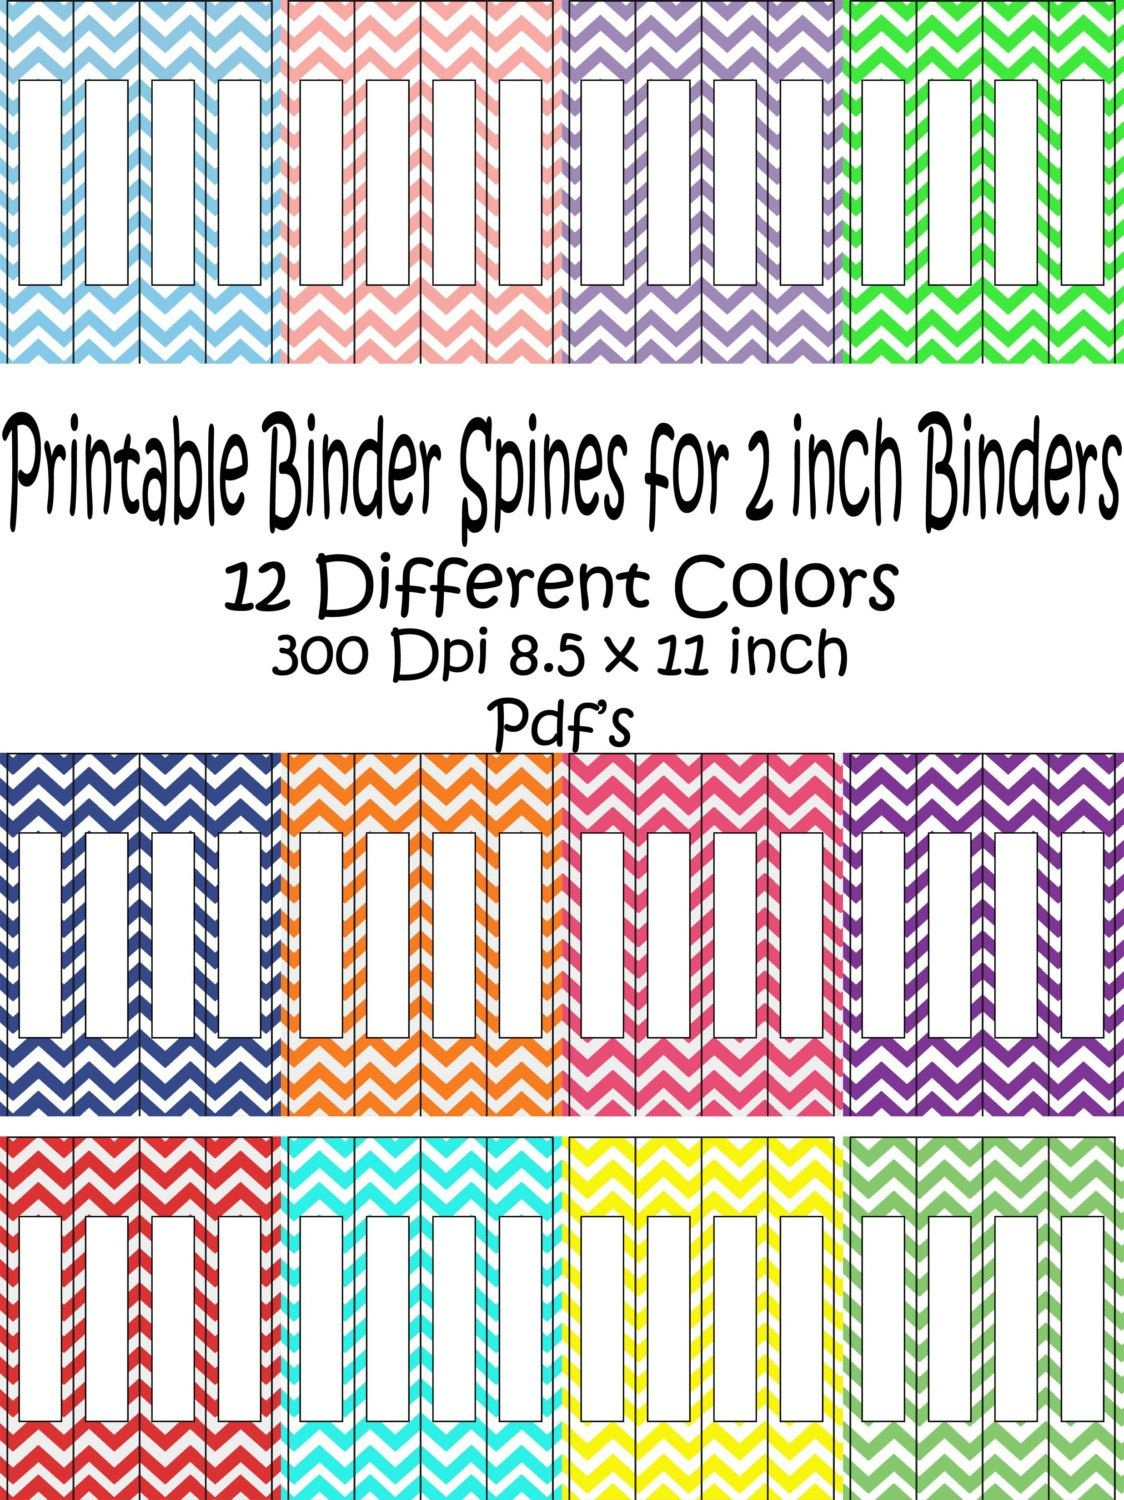 Printable Binder Spine Pack Size 2 Inch-12 Different Colors In - Free Printable Binder Covers And Spines